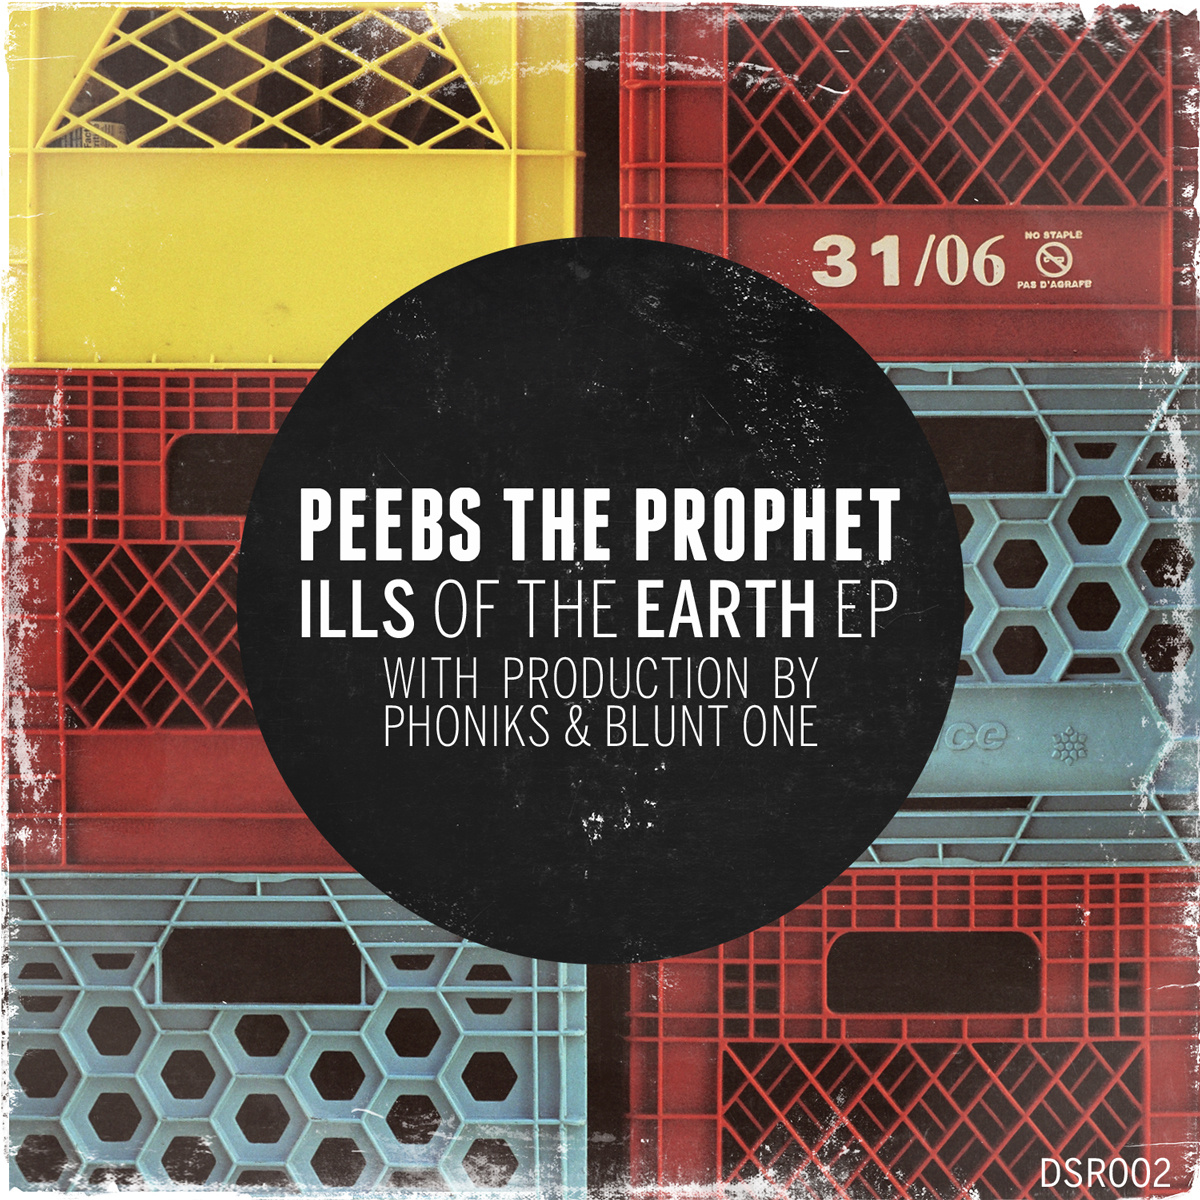 Peebs_the_prophet_-_ills_of_the_earth_ep